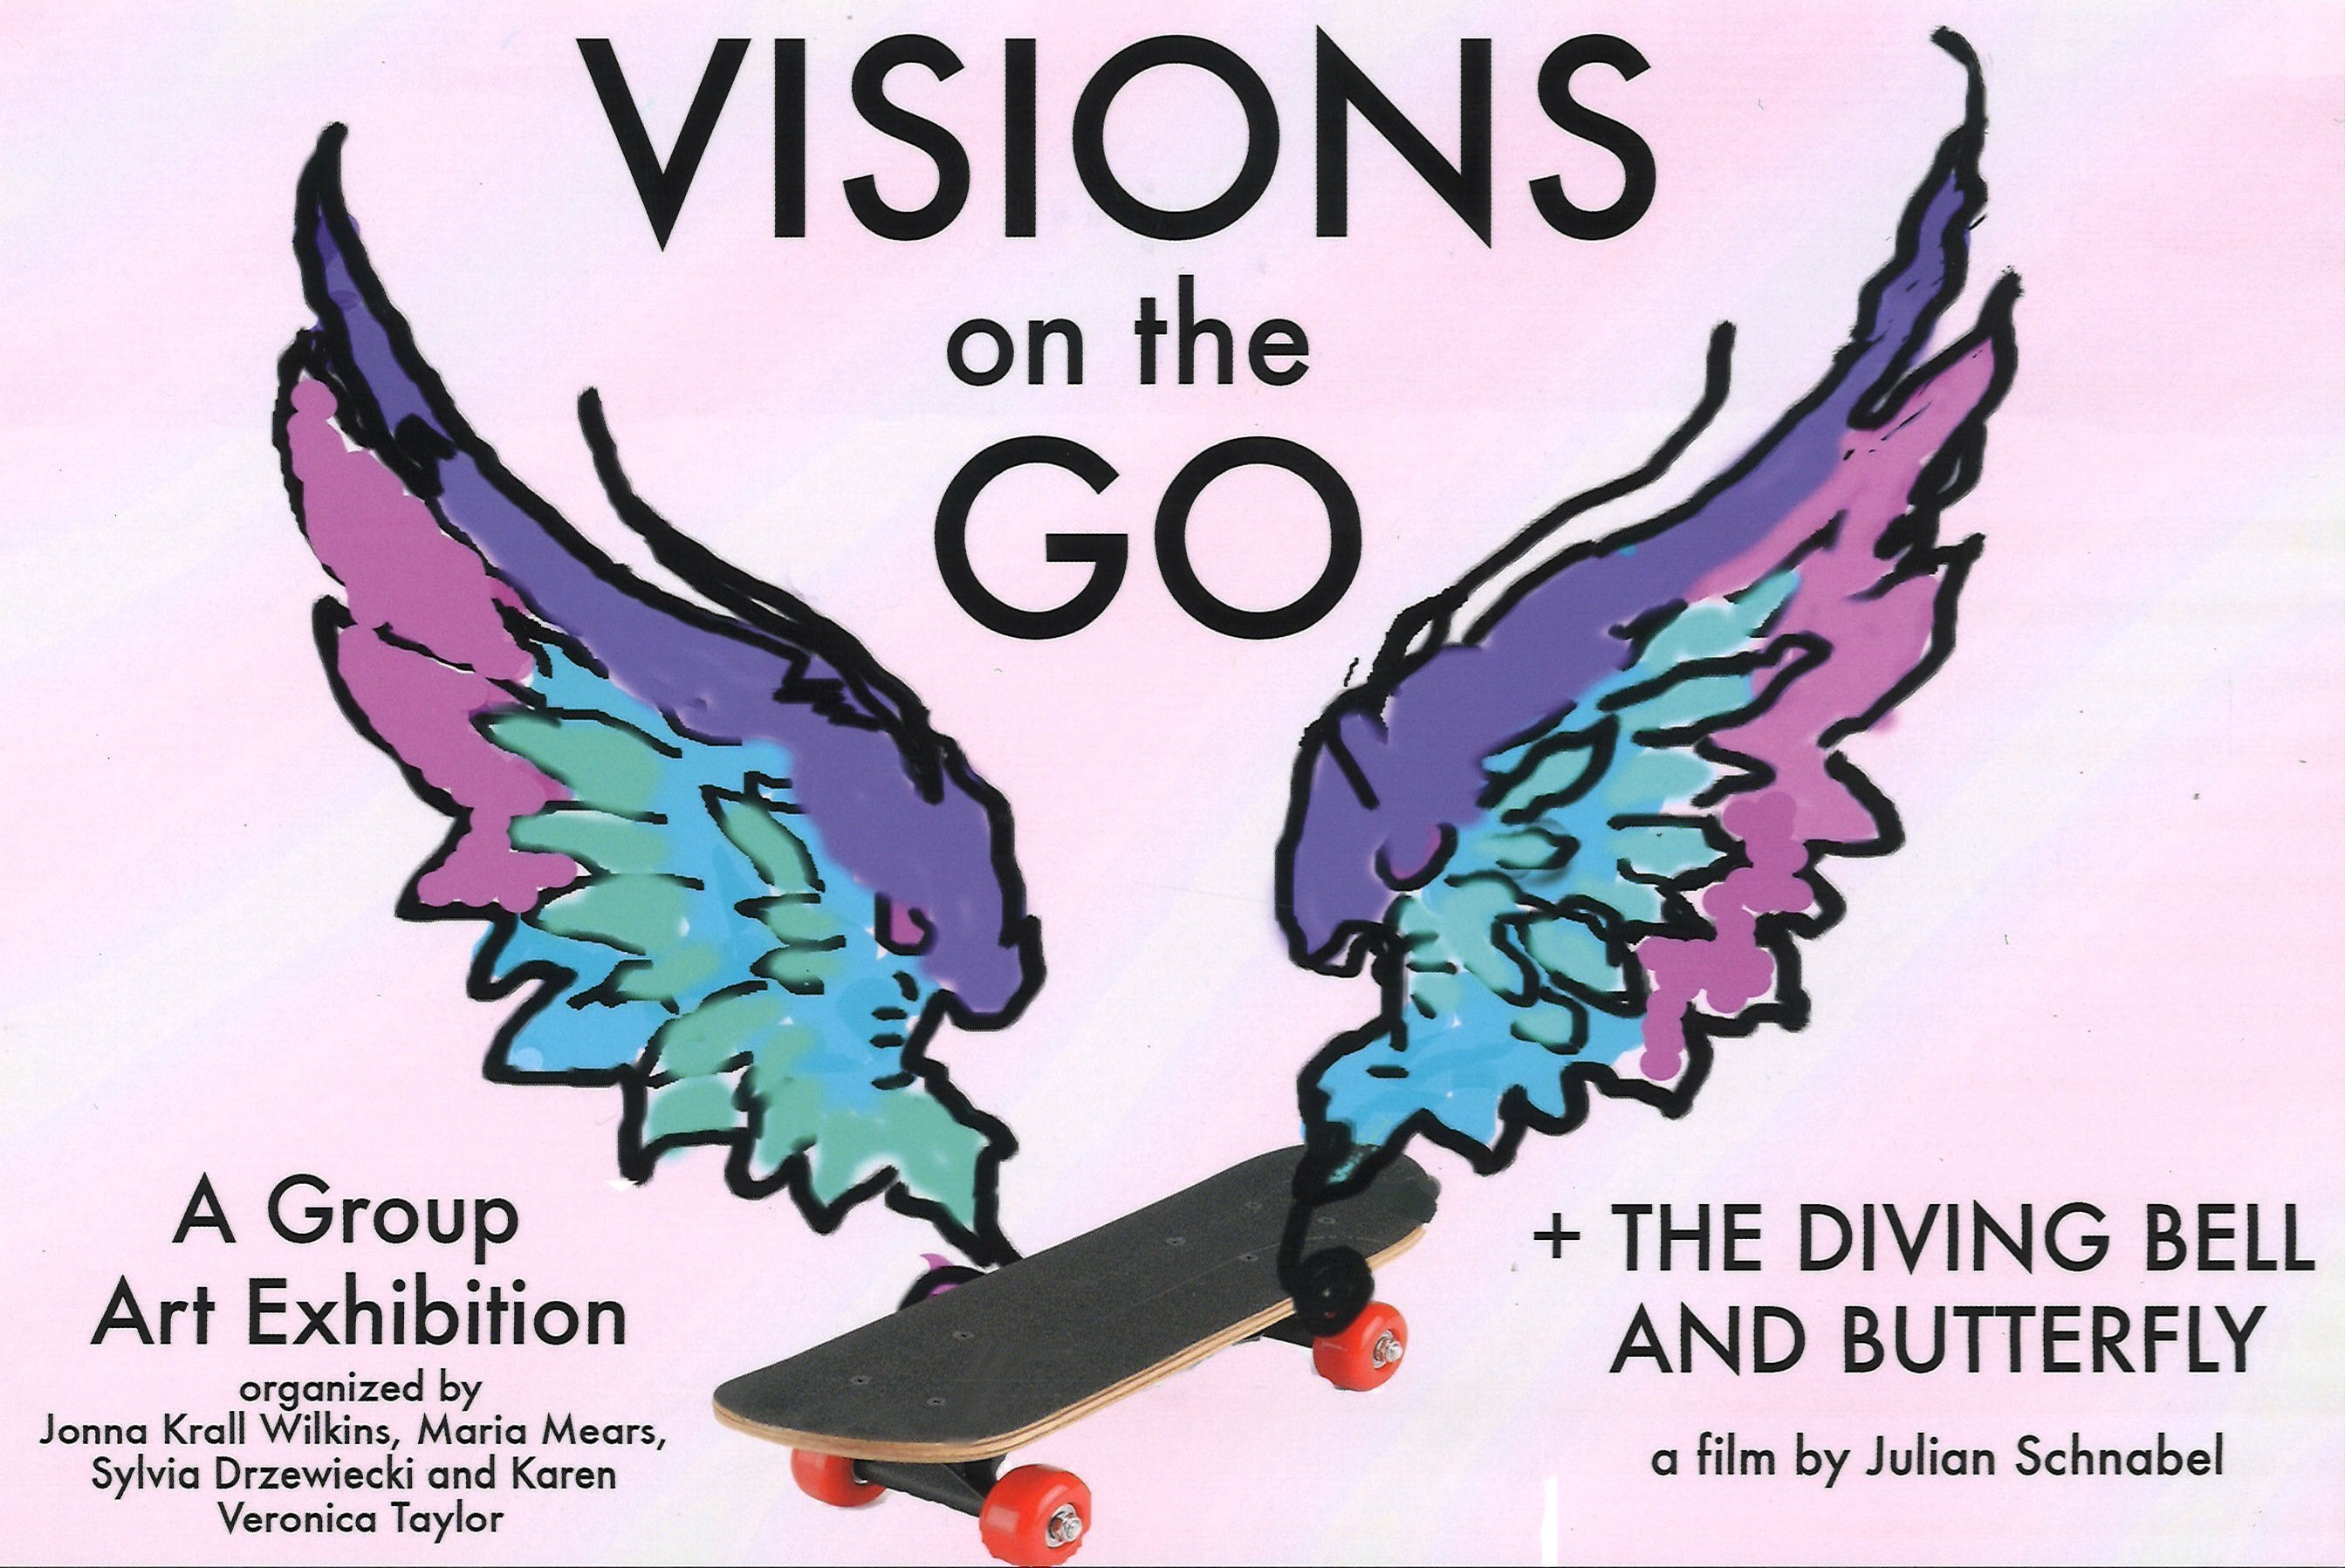 Visions on the Go: A Group Art Exhibition & The Diving Bell and the Butterfly